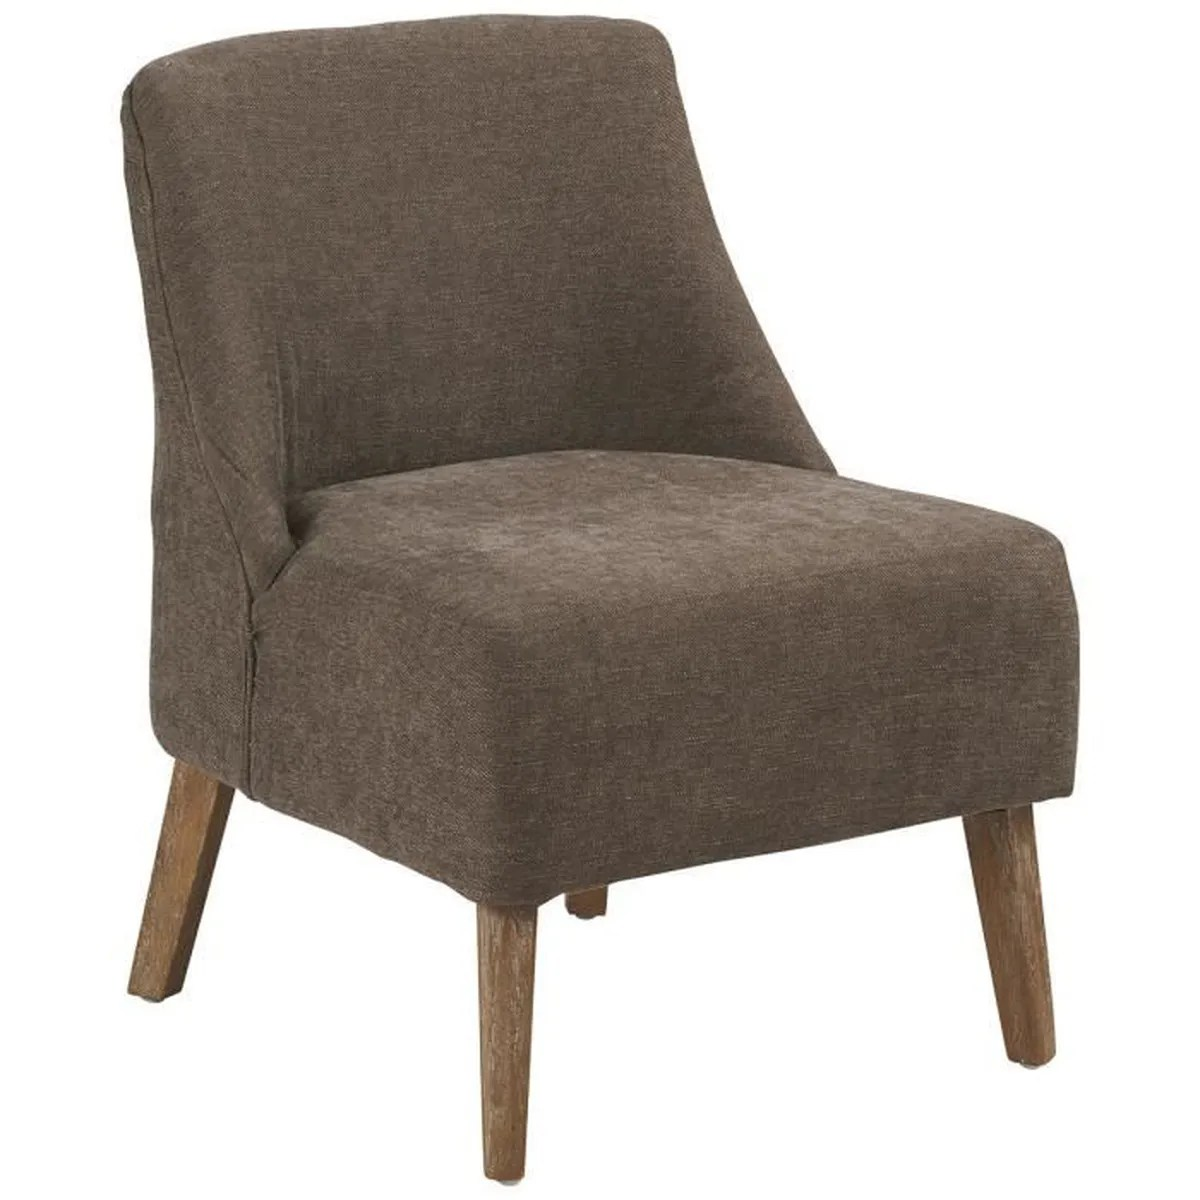 C Discount Fauteuils Fauteuil Crawford Taupe Achat Vente Fauteuil Cdiscount